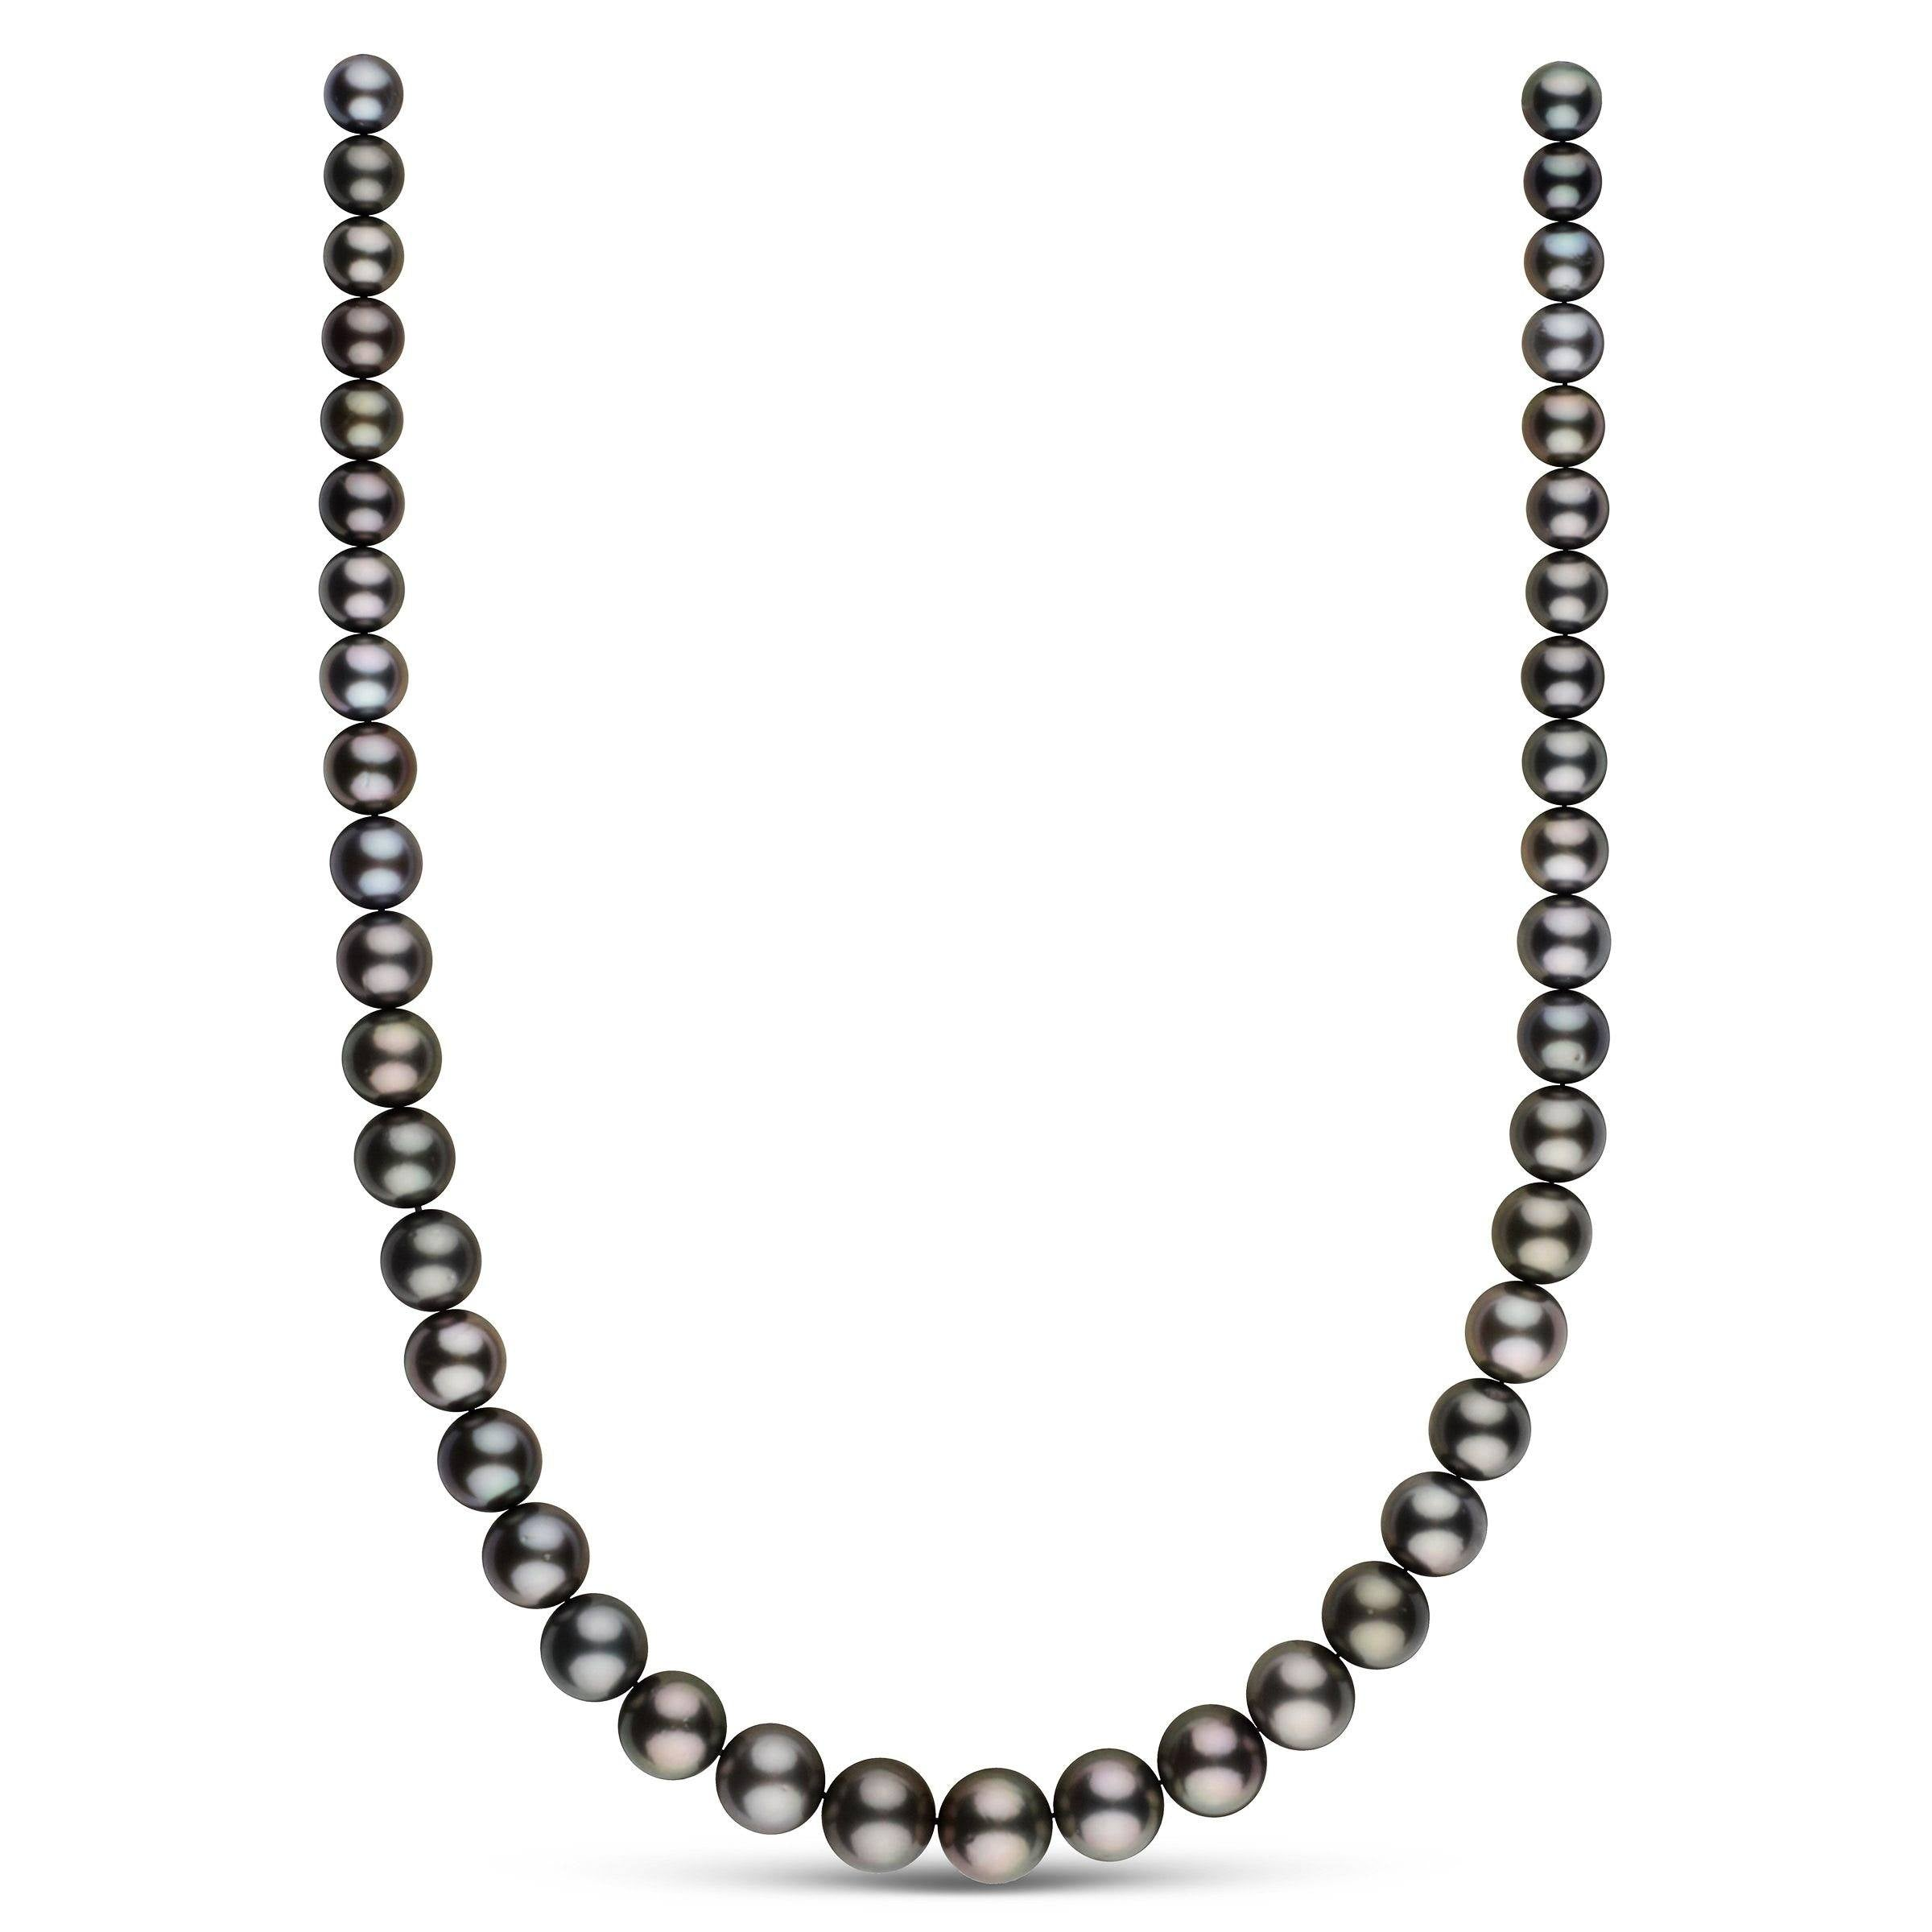 8.2-11.8 mm AA+ Round Tahitian Pearl Necklace